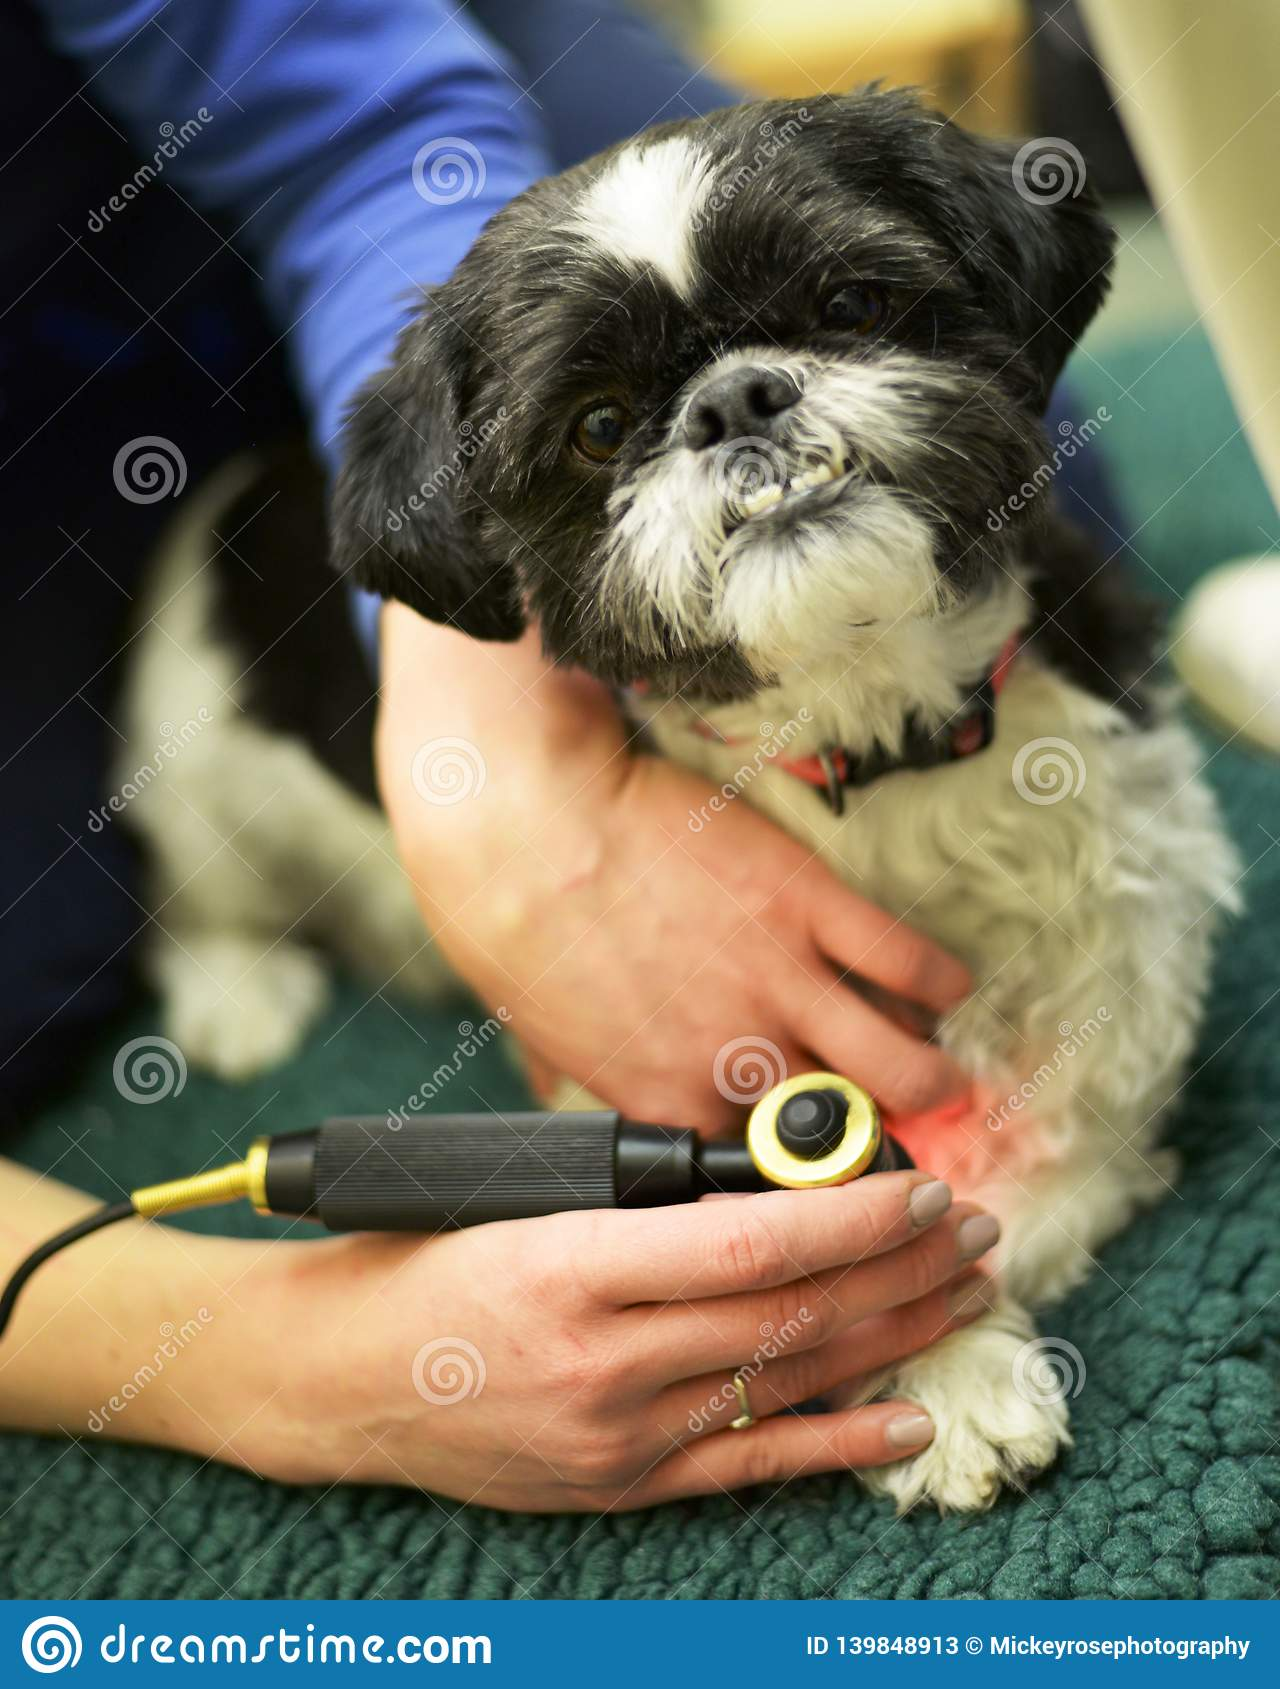 Dog receiving Physiotherapy at the Vets